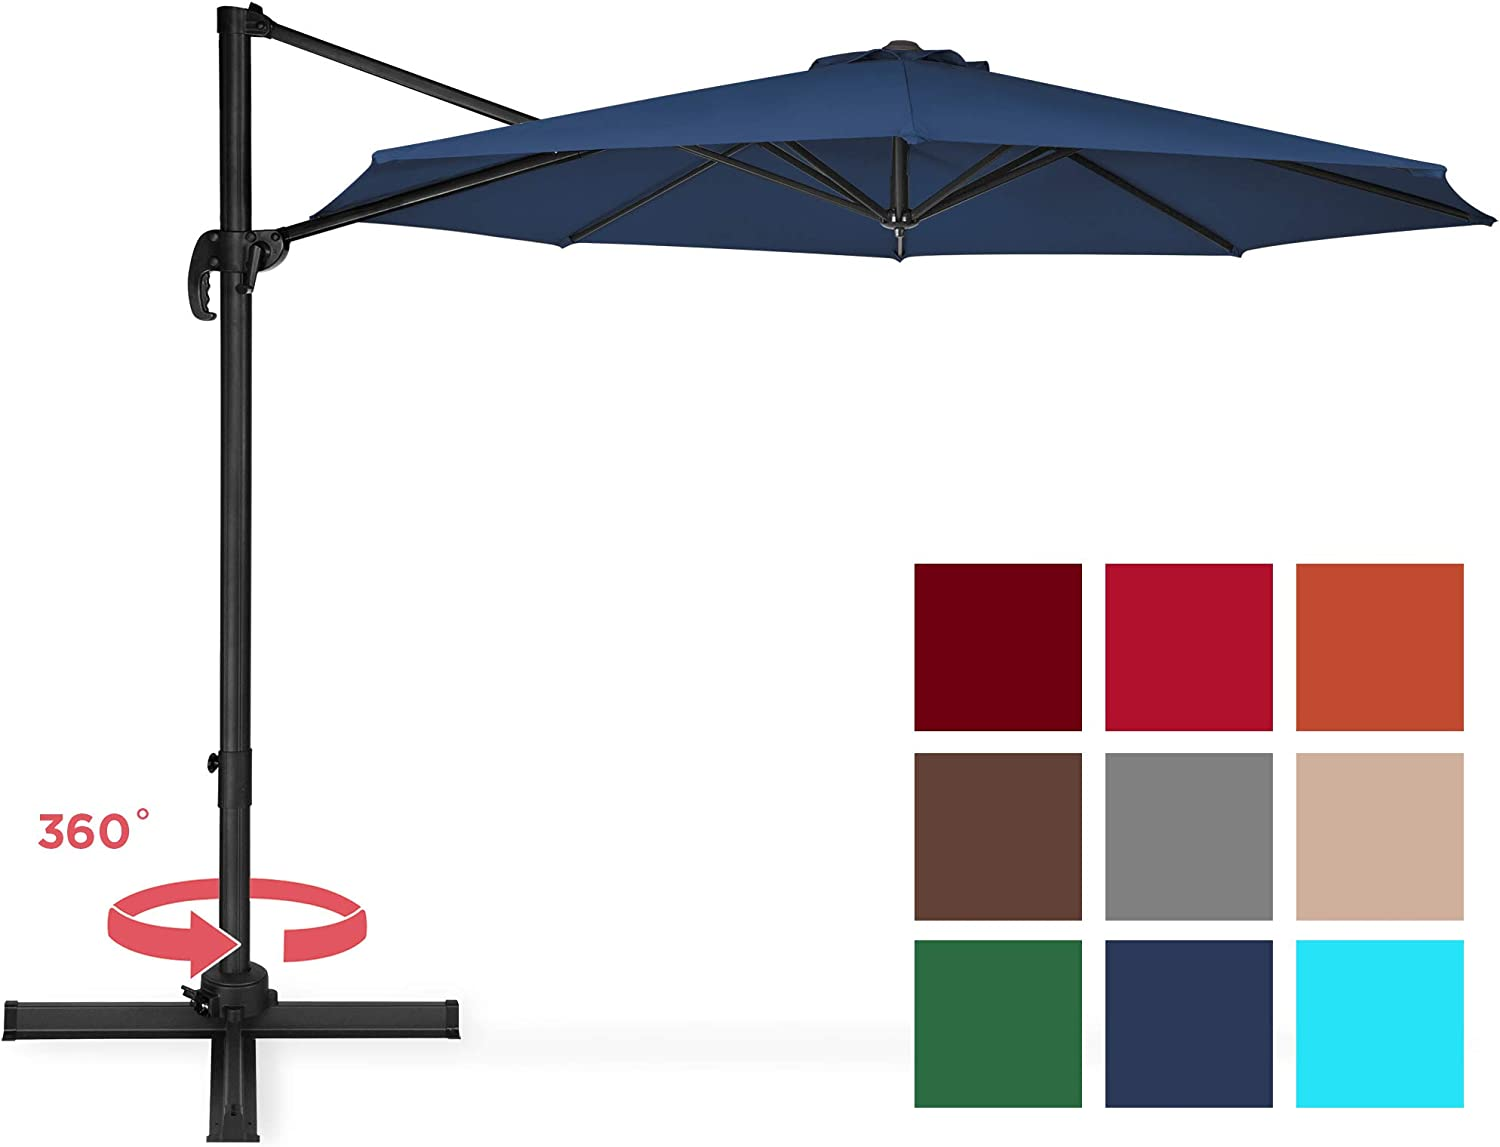 Best Choice Products 10ft 360 Degree Rotating Cantilever Offset Patio Umbrella w Easy Tilt – Navy Blue